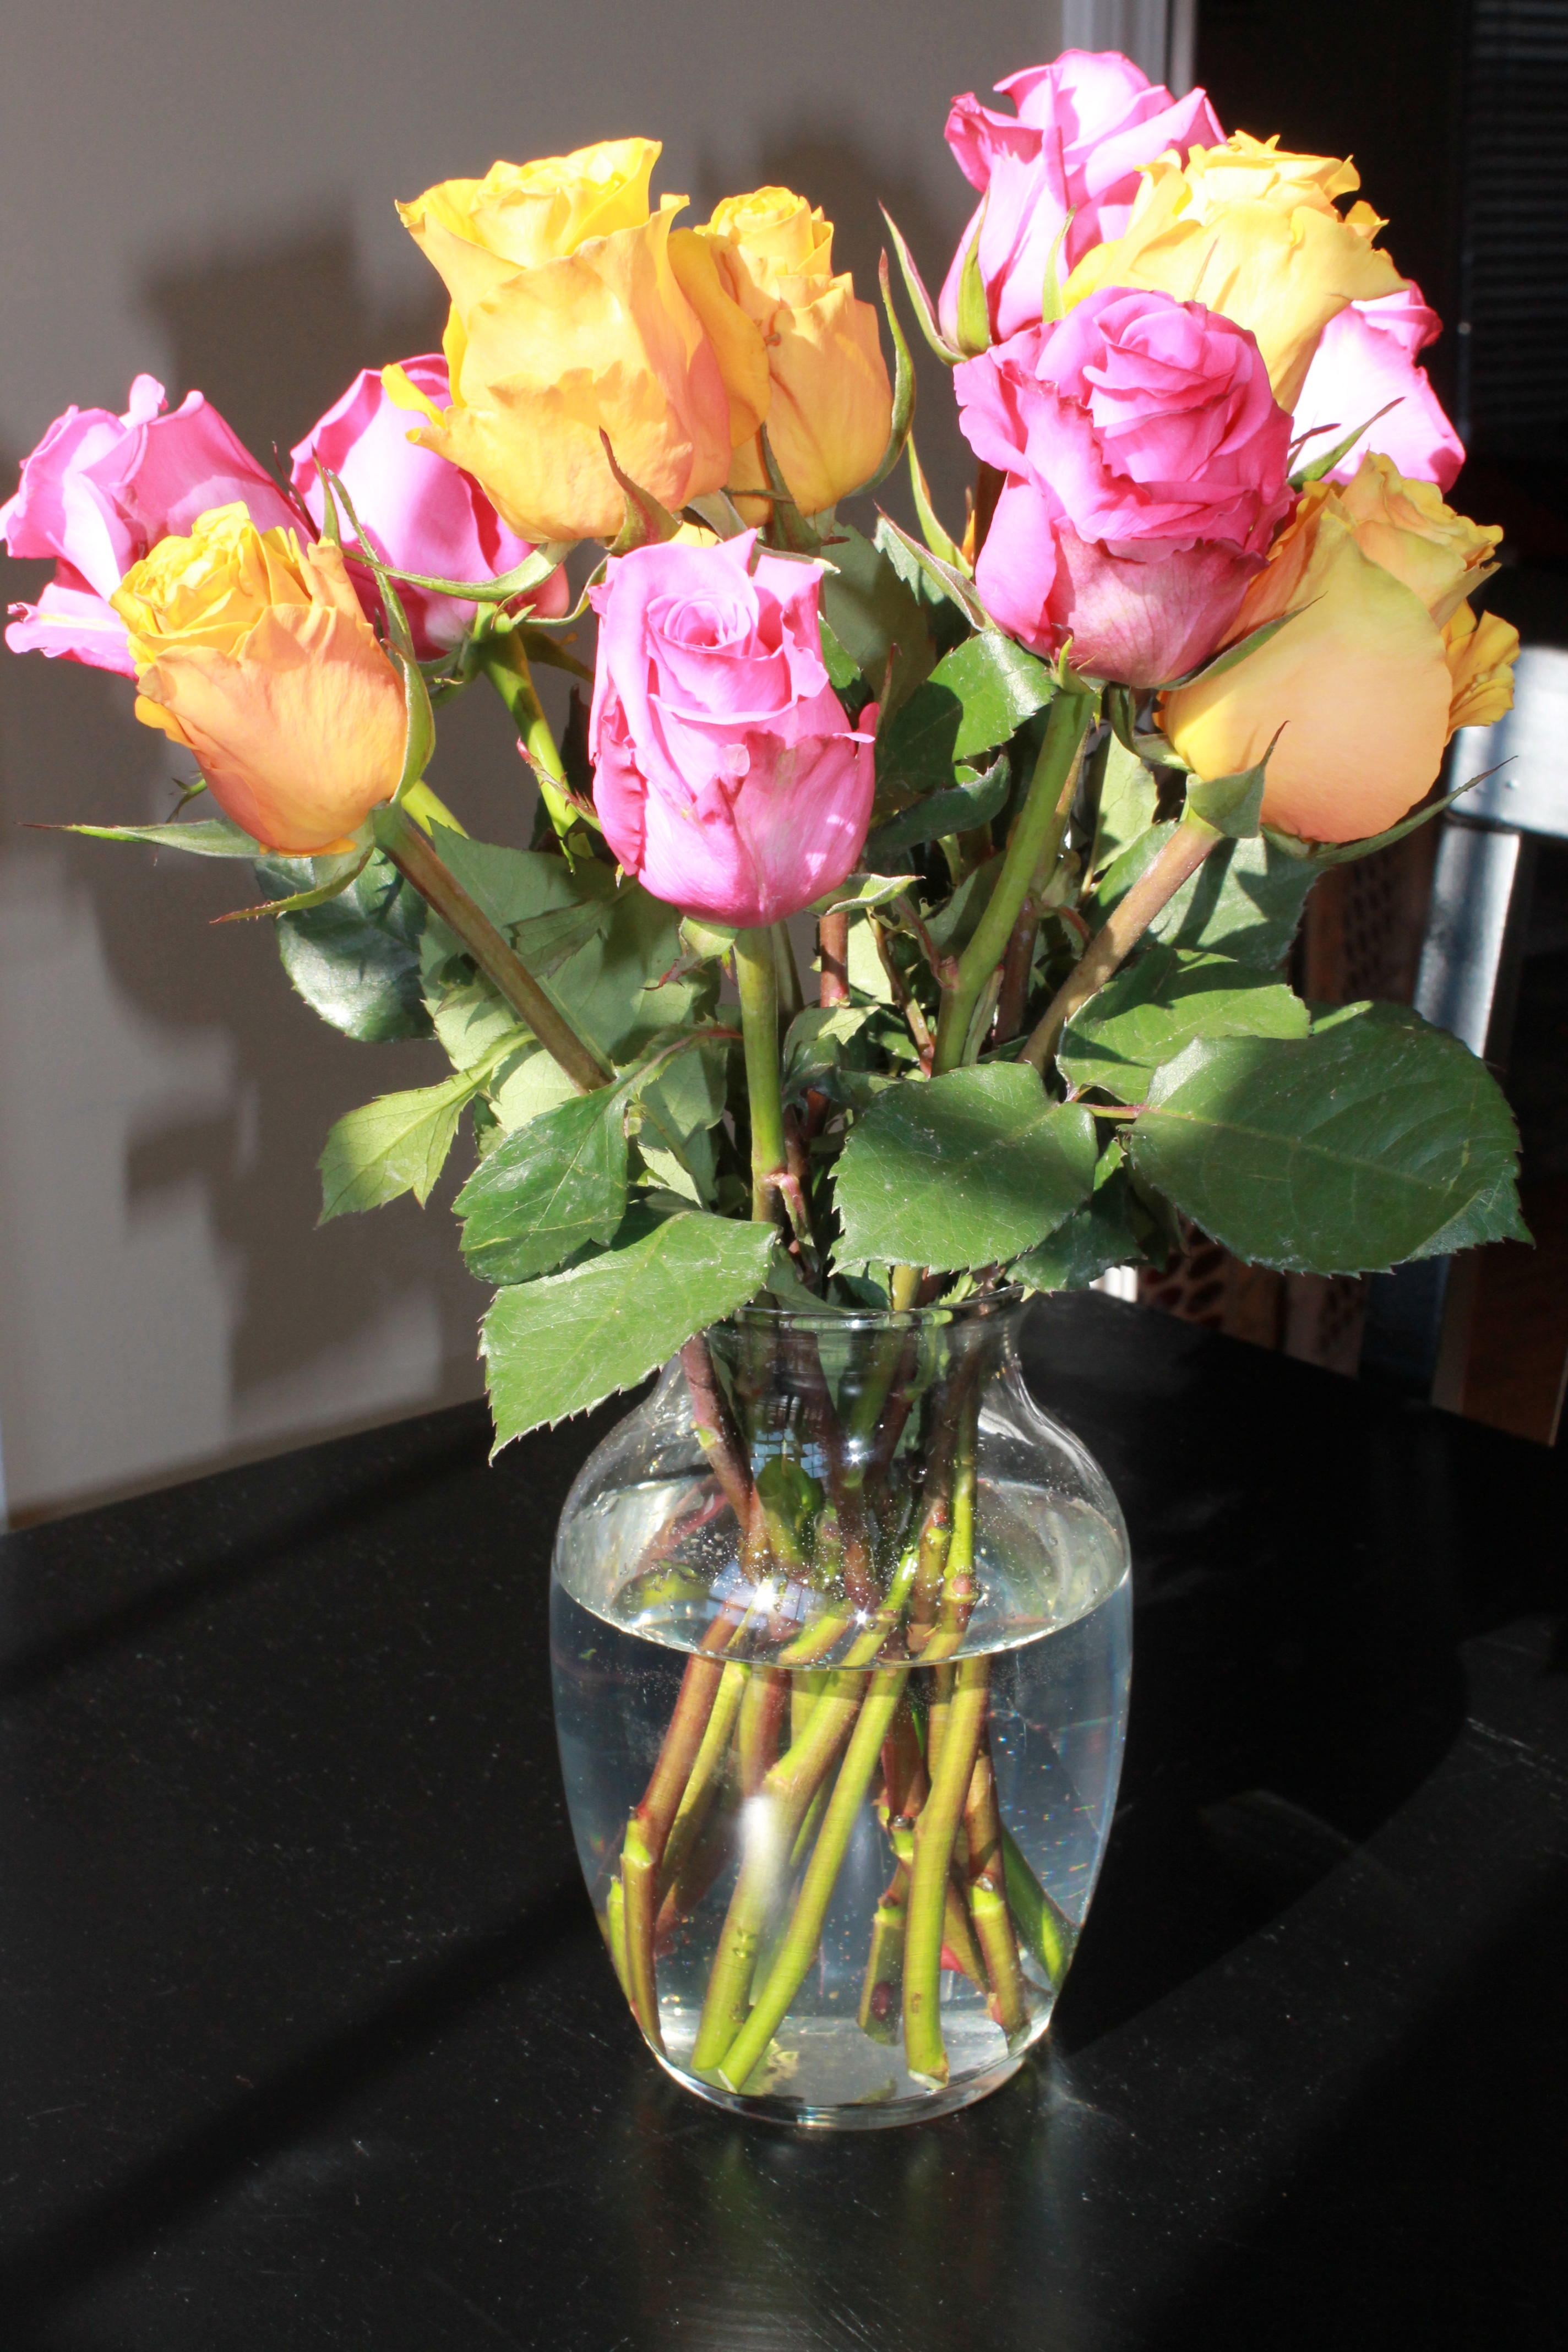 I got roses from a man that isnt my husband mommaalwaysknows today i got a dozen beautiful roses and they werent from my husband now before i set the rumor mill on fire they were from one of the customer service izmirmasajfo